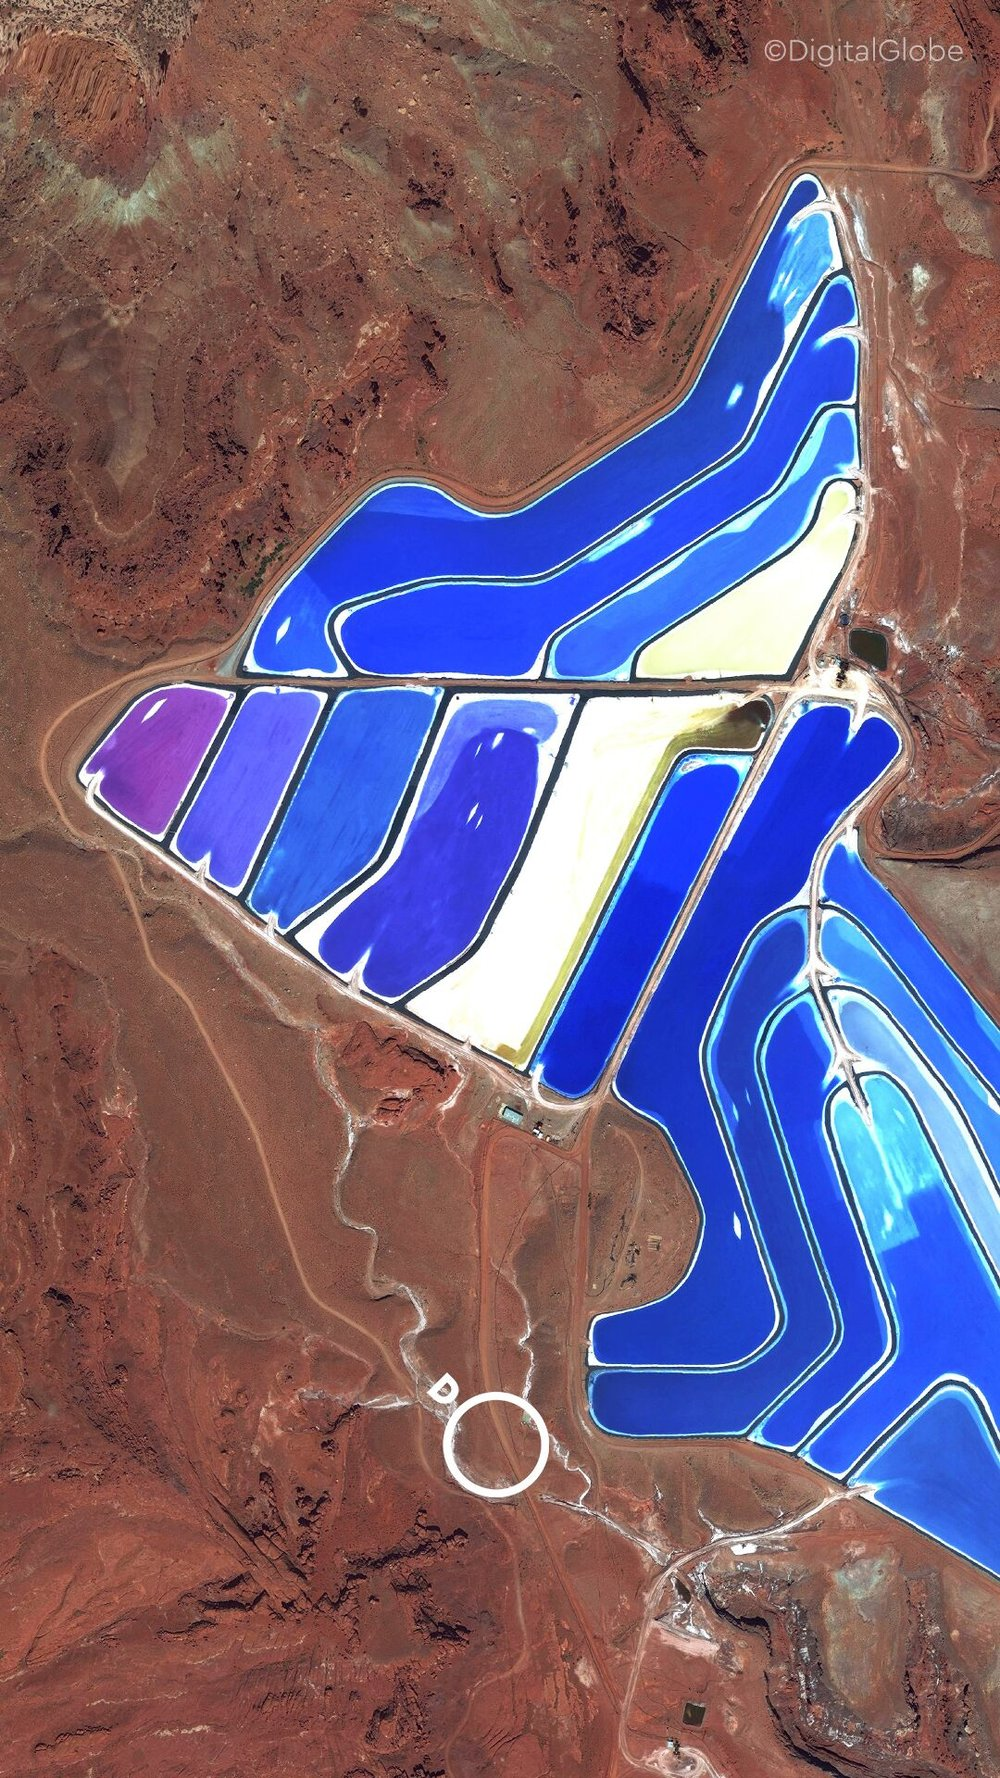 Moab Potash Evaporation Ponds  Click to download via Dropbox